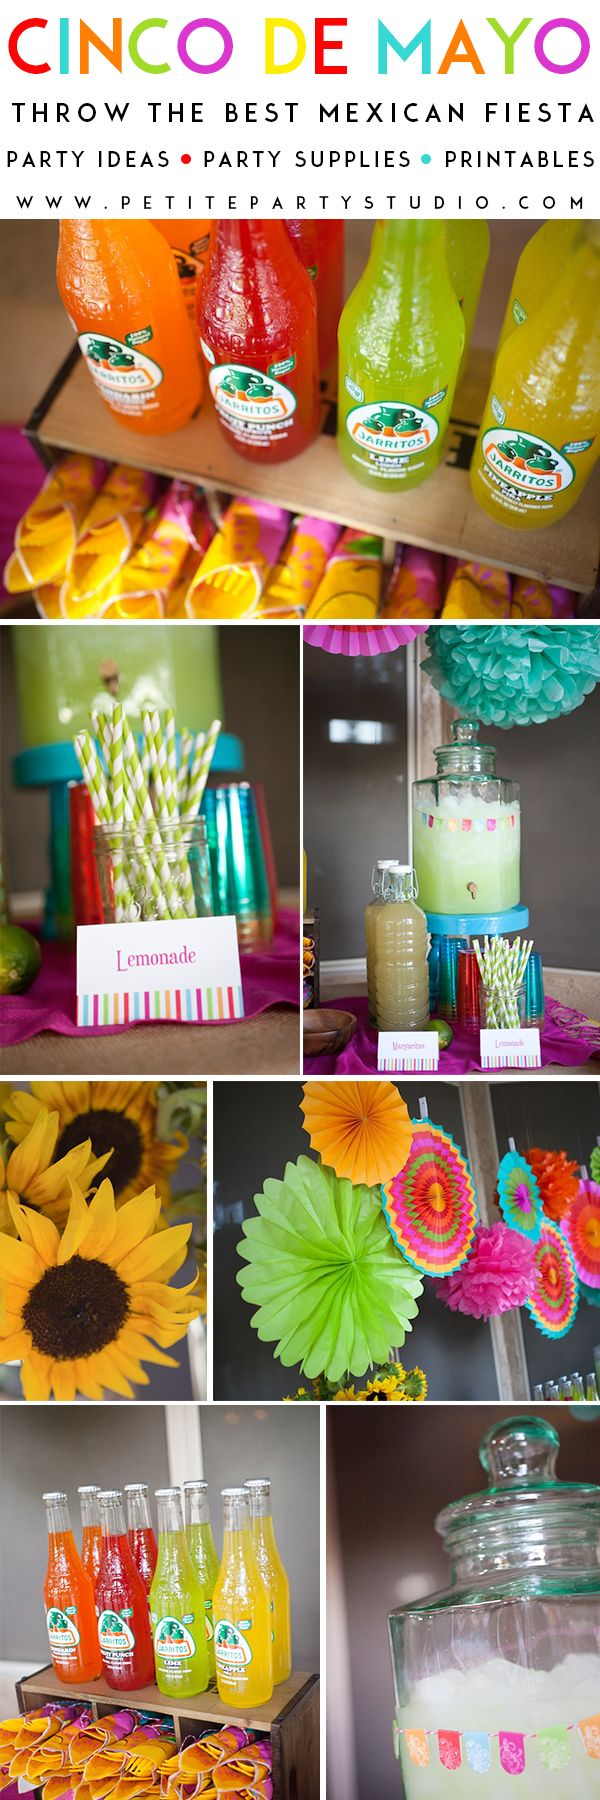 design fiesta my elegant mexican pinterest decorations best decoration of moms images on party decor